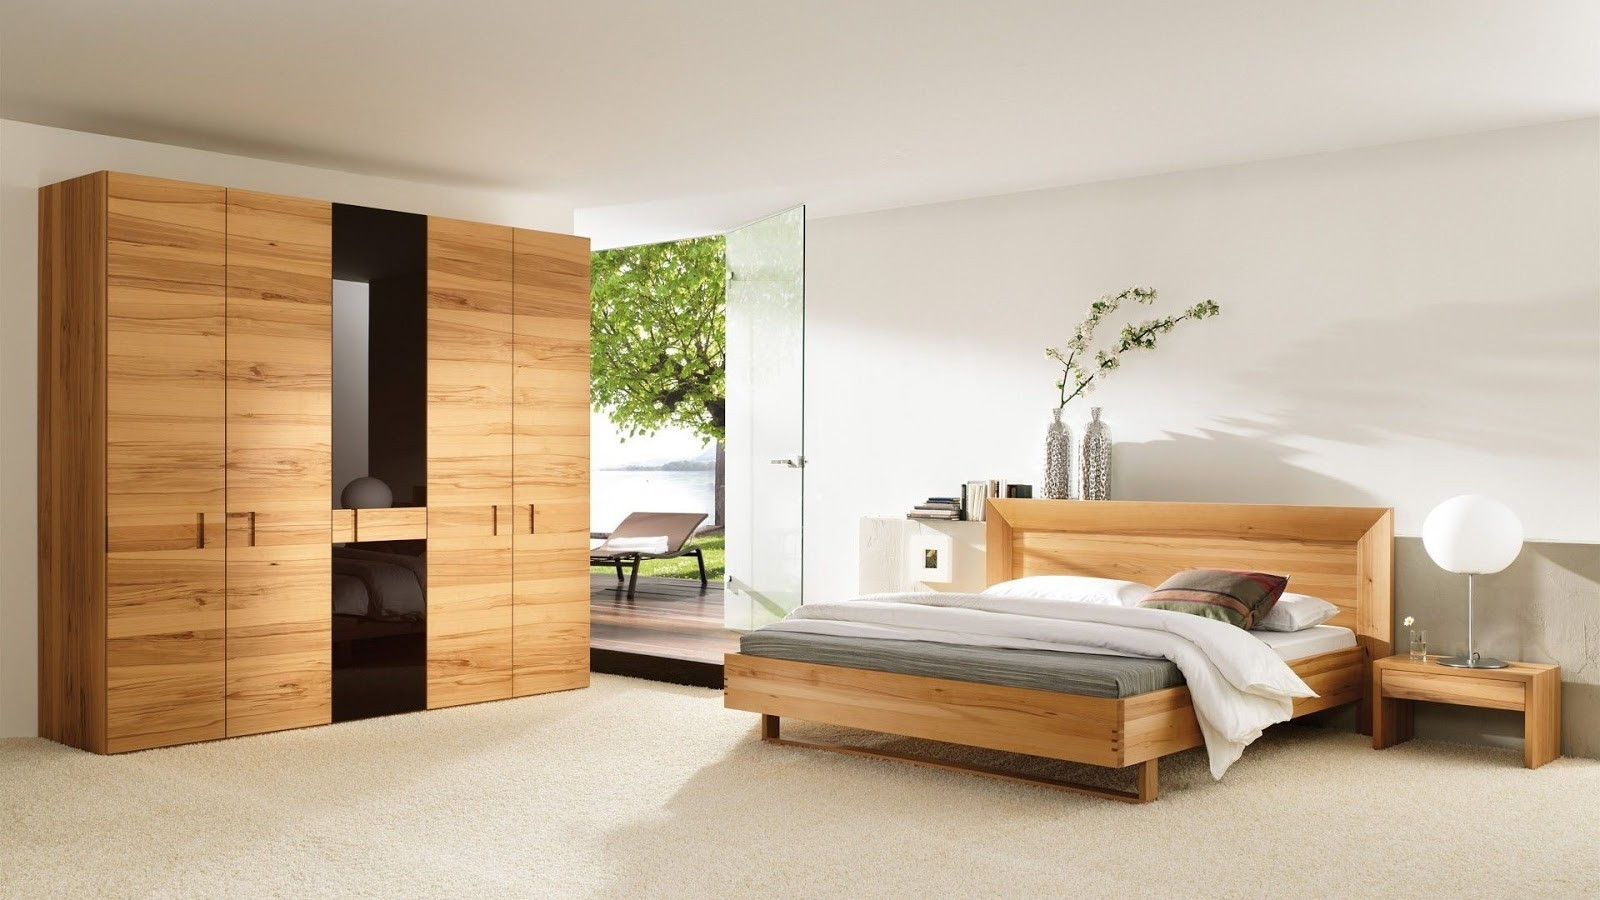 Brown Dresser An Excellent Additional Bedroom Modern Furniture inside Brilliant in addition to Lovely minimalist bedroom dresser intended for Residence - Man 17